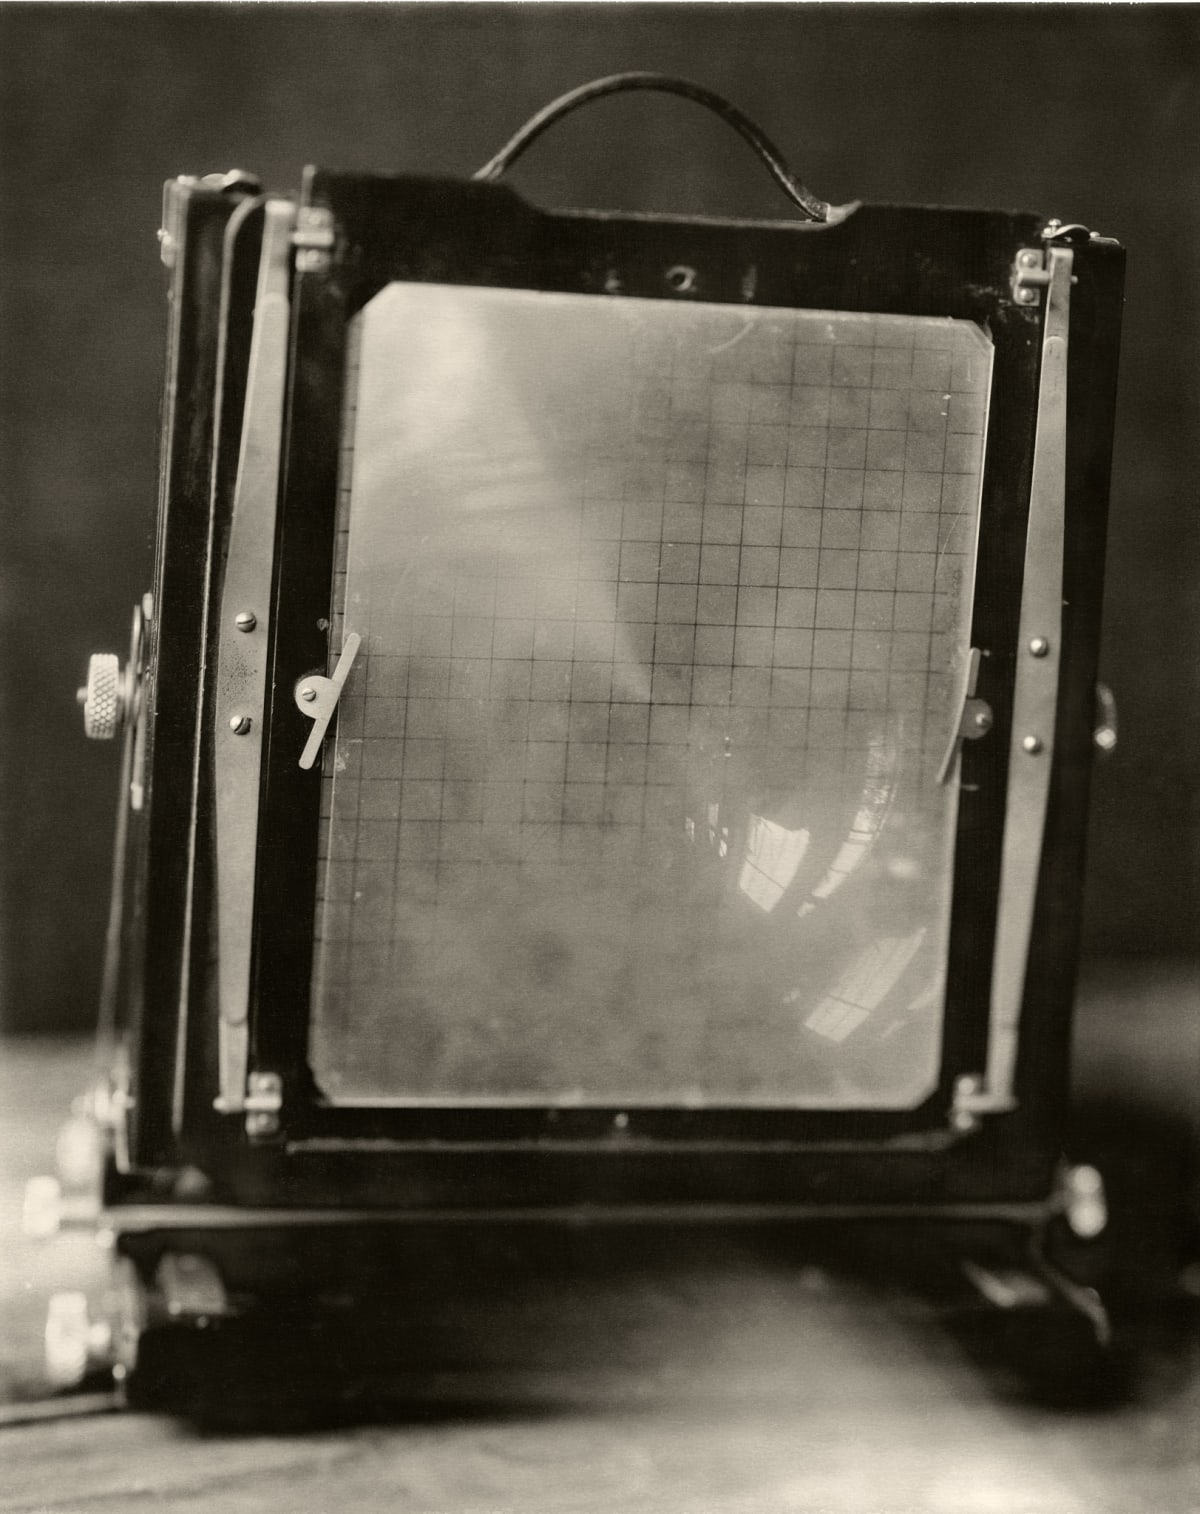 Paolo Roversi, Screen, Paris, 2002